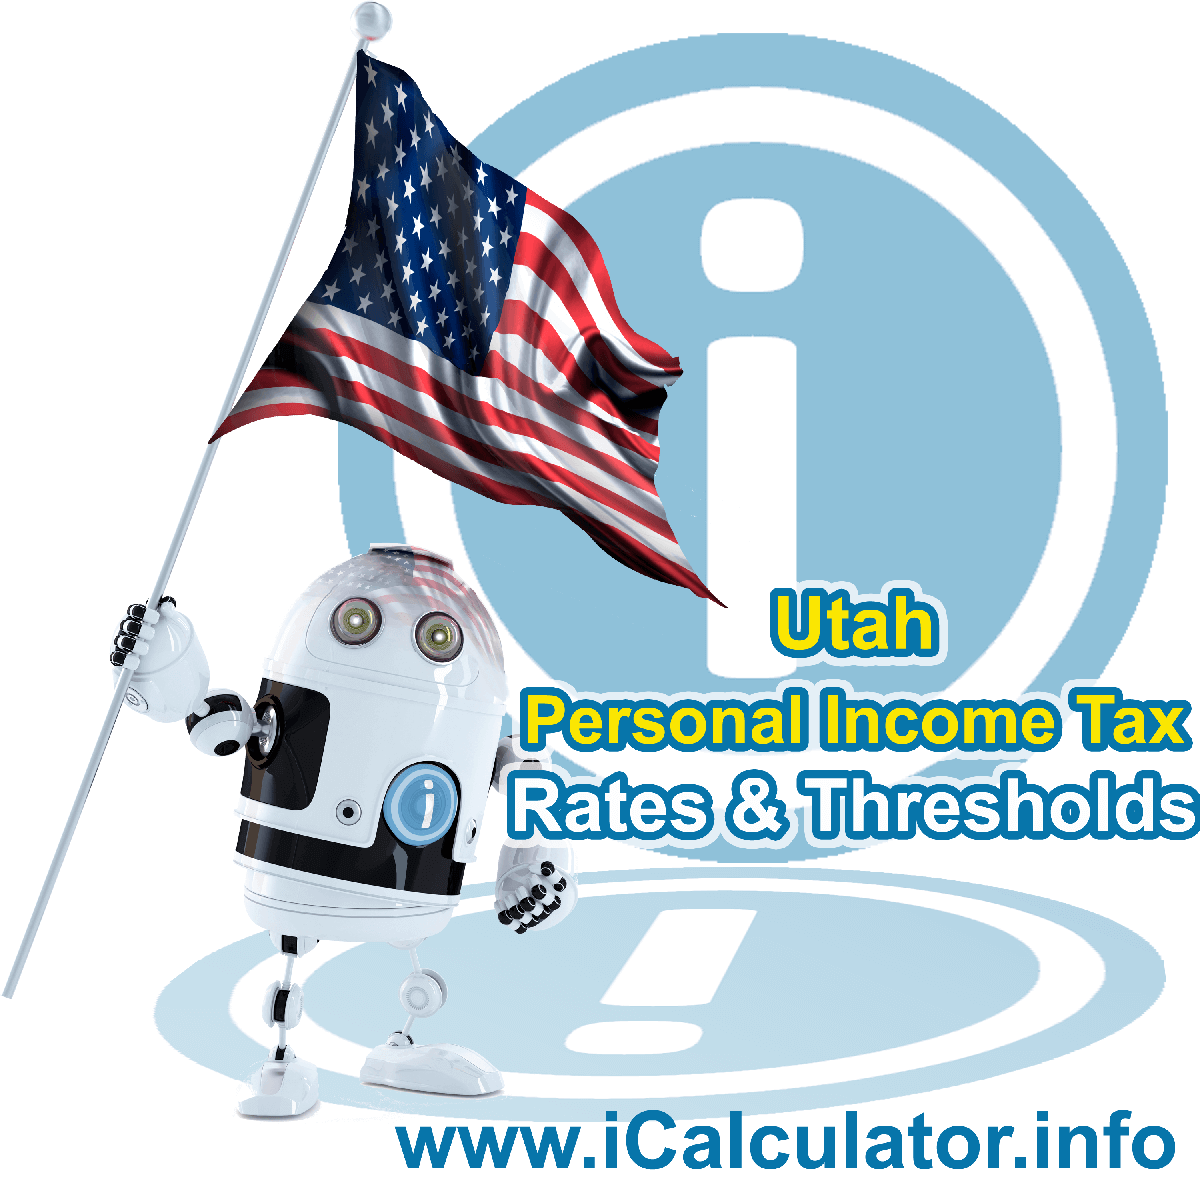 Utah State Tax Tables 2017. This image displays details of the Utah State Tax Tables for the 2017 tax return year which is provided in support of the 2017 US Tax Calculator